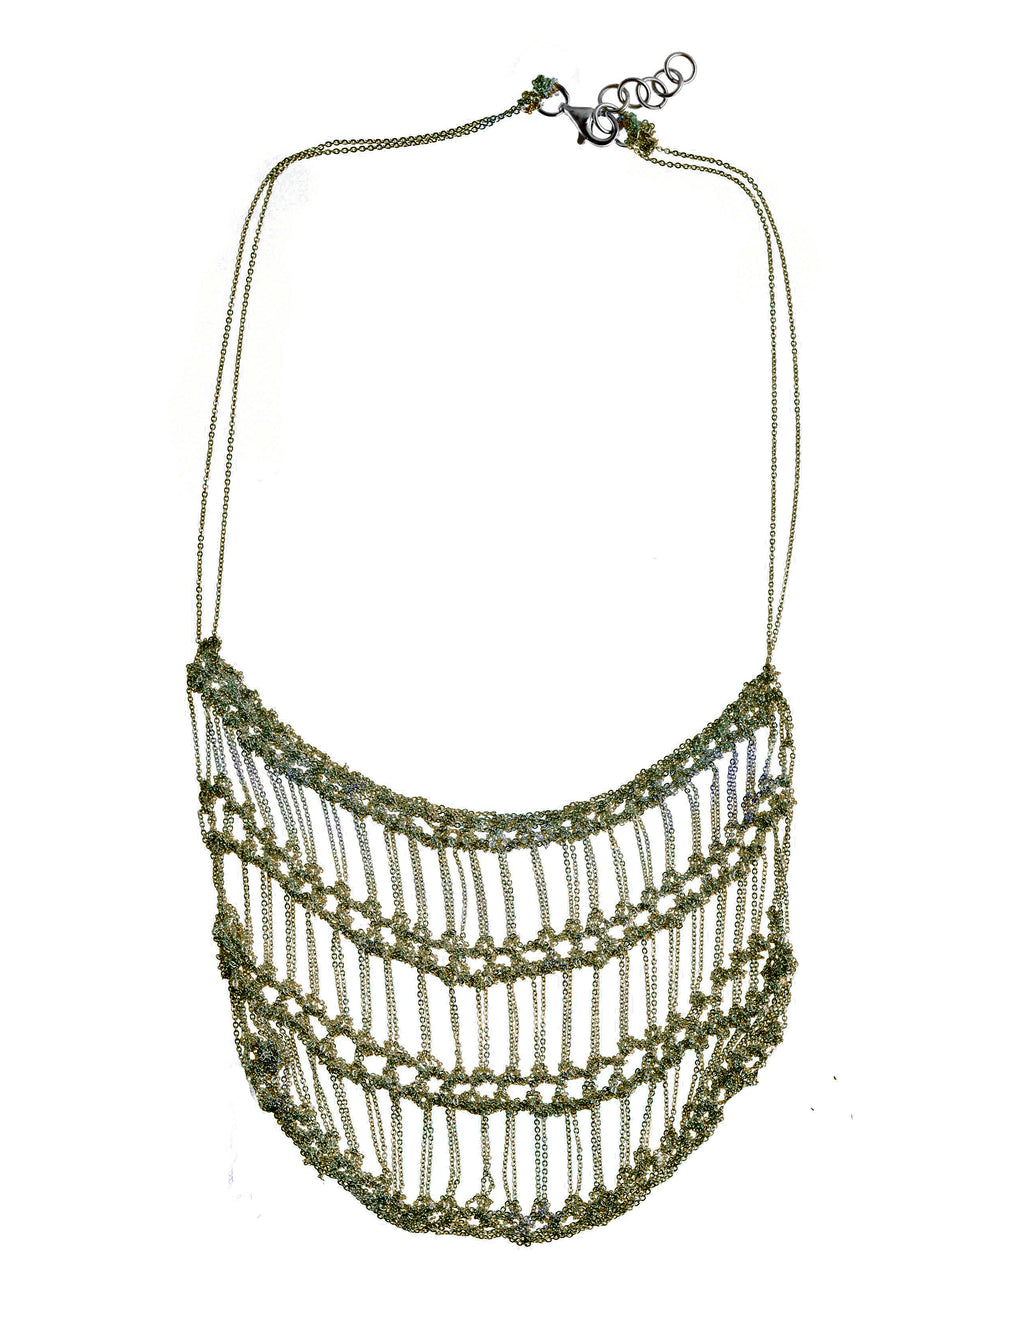 Frame Necklace in Anti-Peach